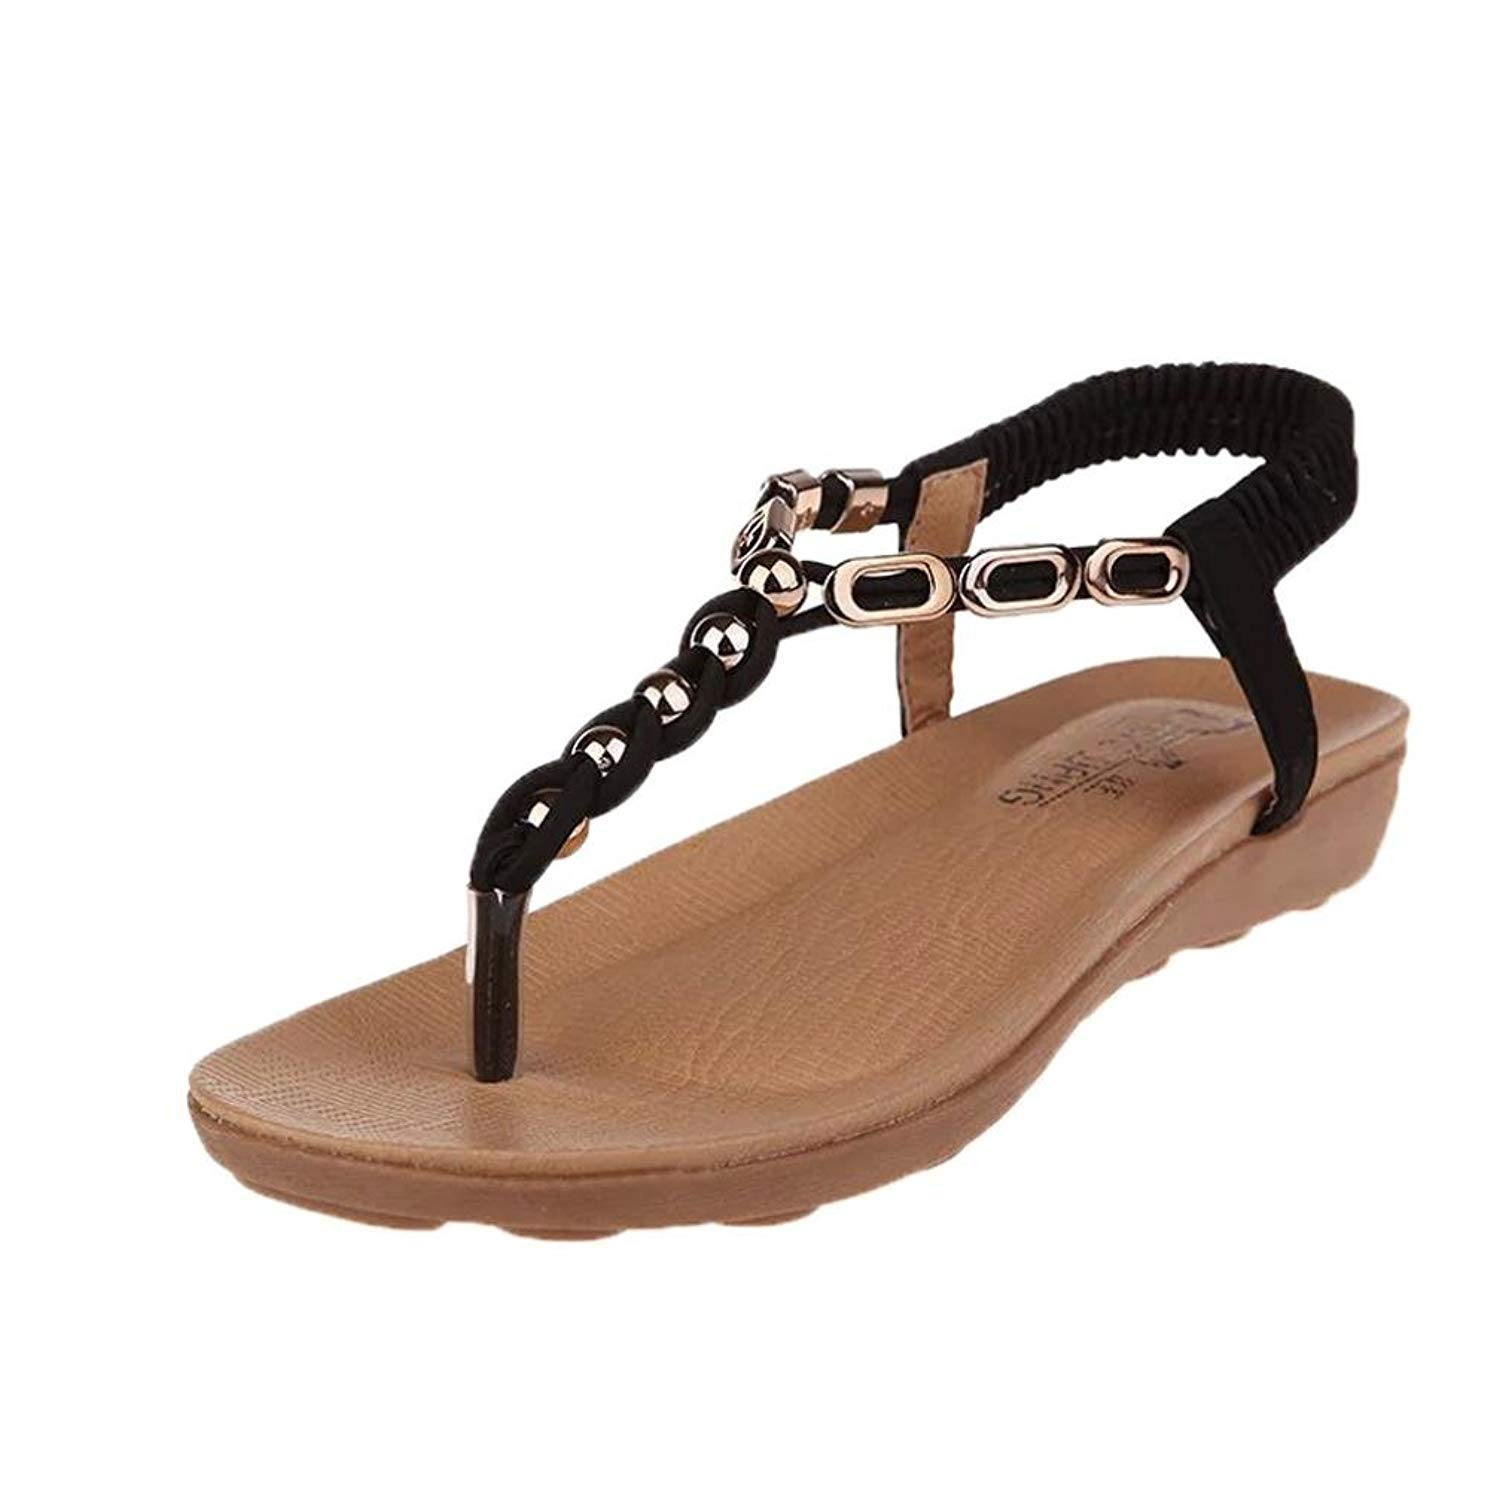 4d59dac76e1f Get Quotations · Clearance Sale! ❤ Universal Braided Ankle T-Strap Bohemia  Sandal for Women